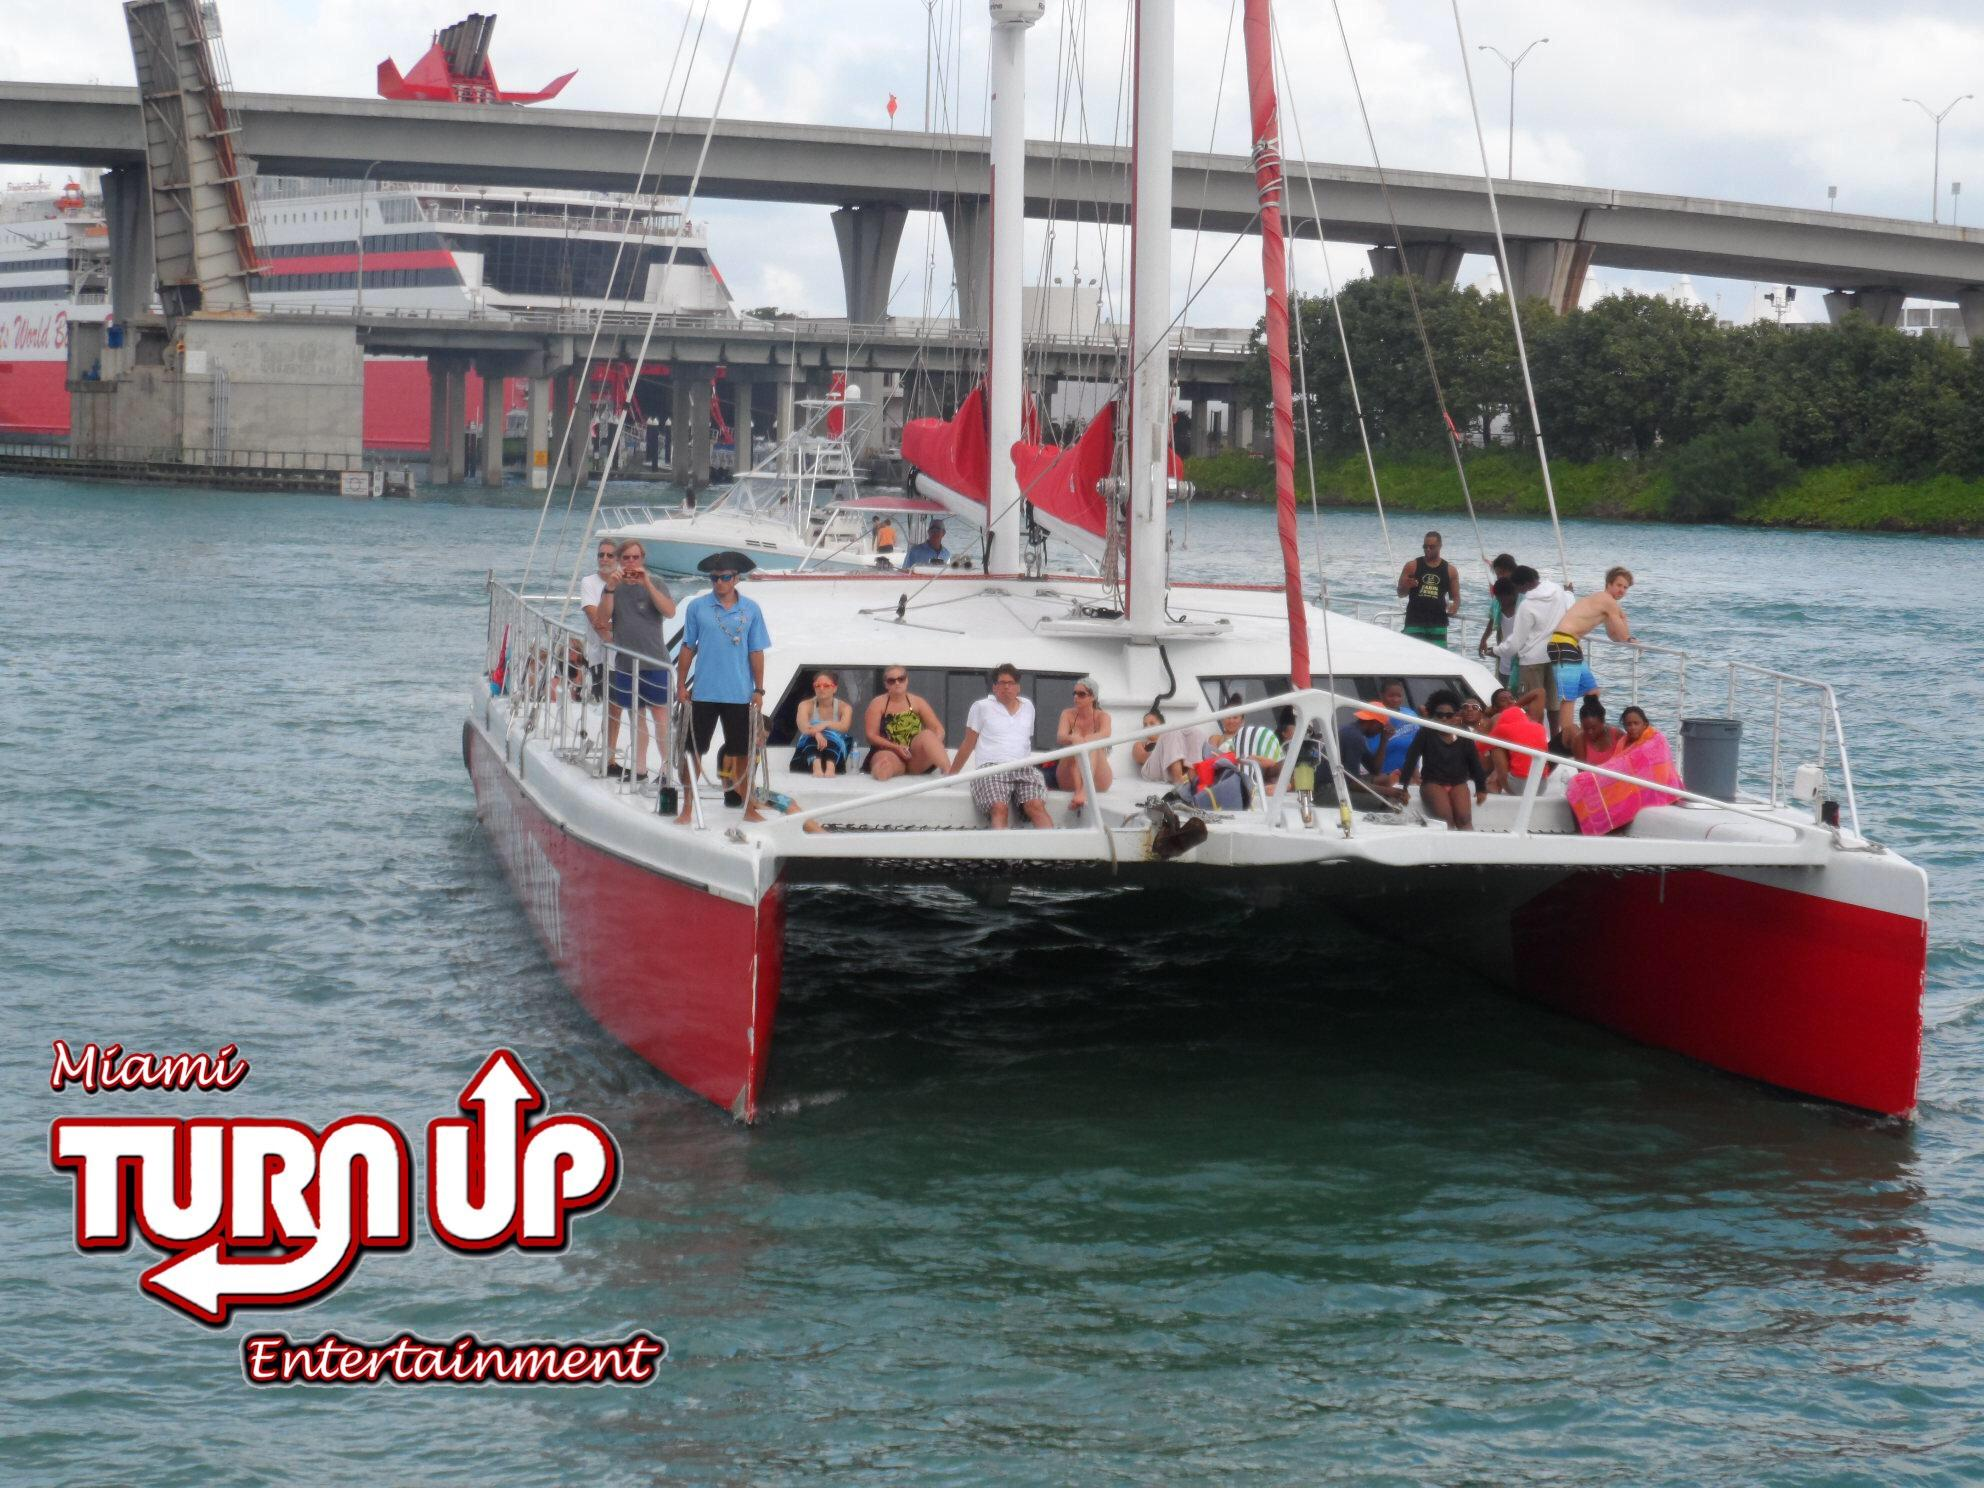 CATAMARAN SAIL AND SNORKEL YACHT PARTY|SNACKS,SNORKELS, MASKS,WATER TRAMPOLINE PROVIDED. CATAMARAN SAIL AND SNORKEL YACHT PARTY|SNACKS,SNORKELS, MASKS,WATER TRAMPOLINE PROVIDED